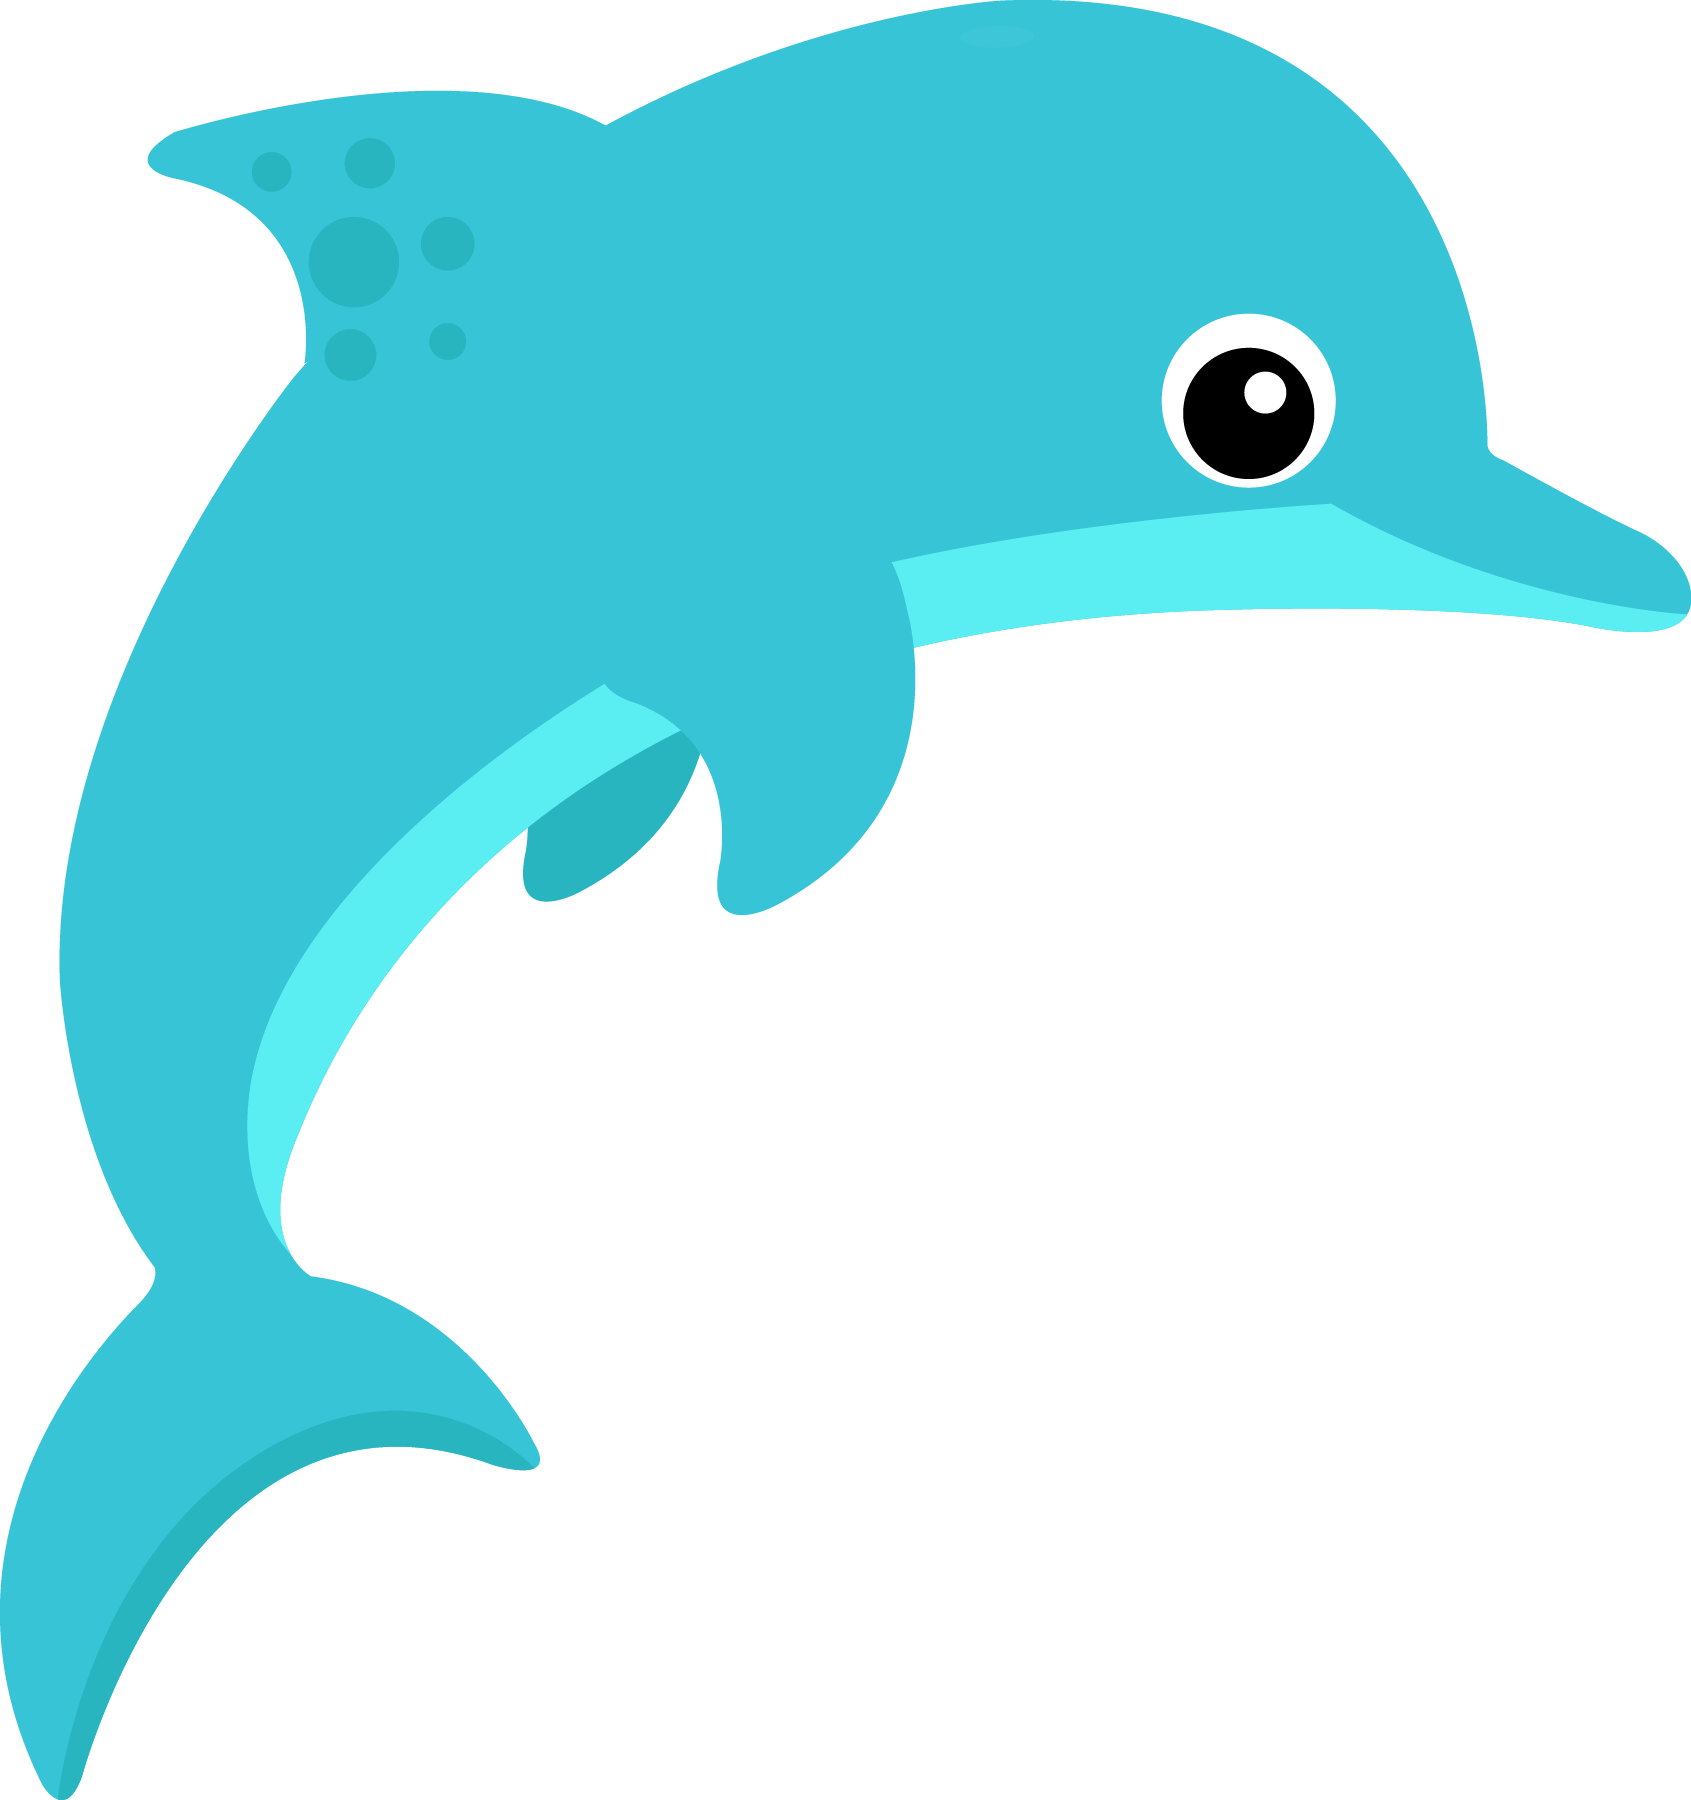 dolphin clipart free download best dolphin clipart on sea clip art images sea clip art images